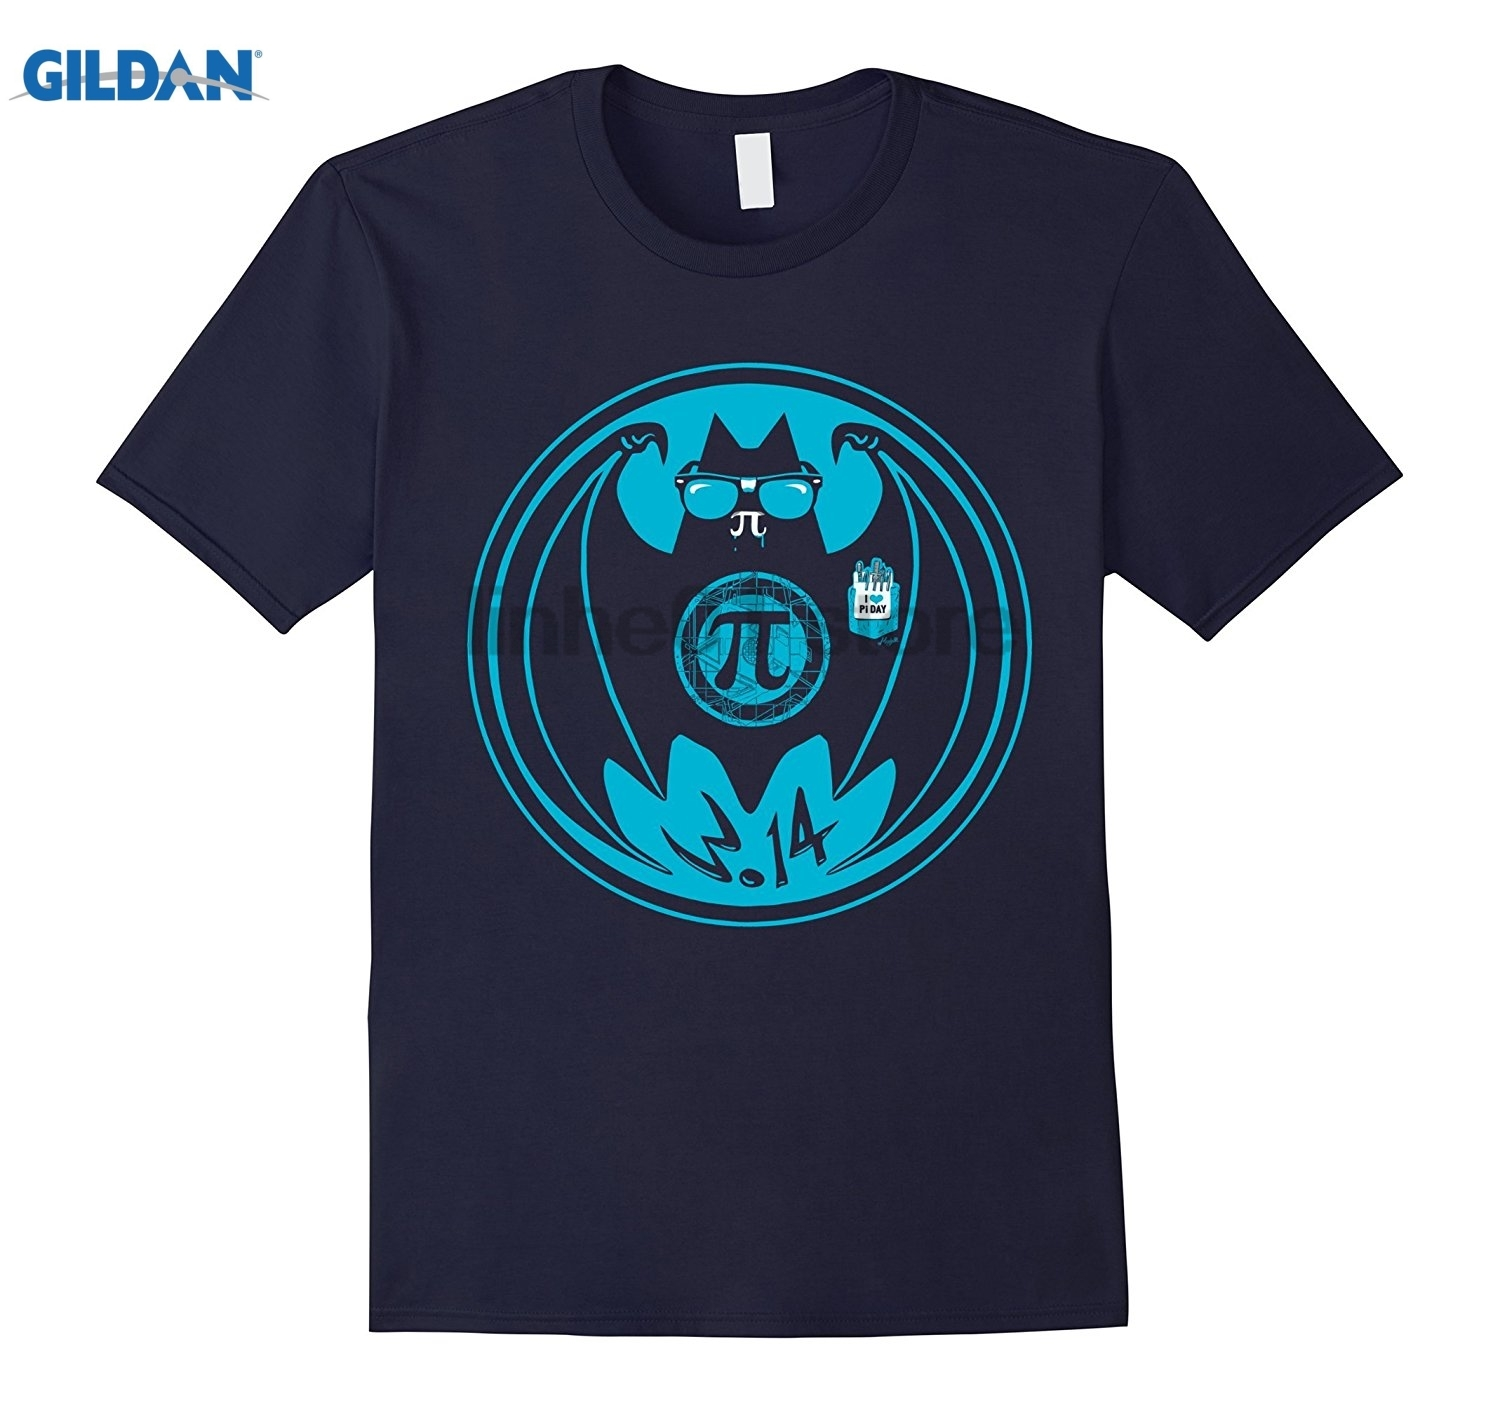 GILDAN Funny Vam Pi Symbol Bat T-shirt - Pi Day 2017 Shirts glasses Womens T-shirt Womens T-shirt